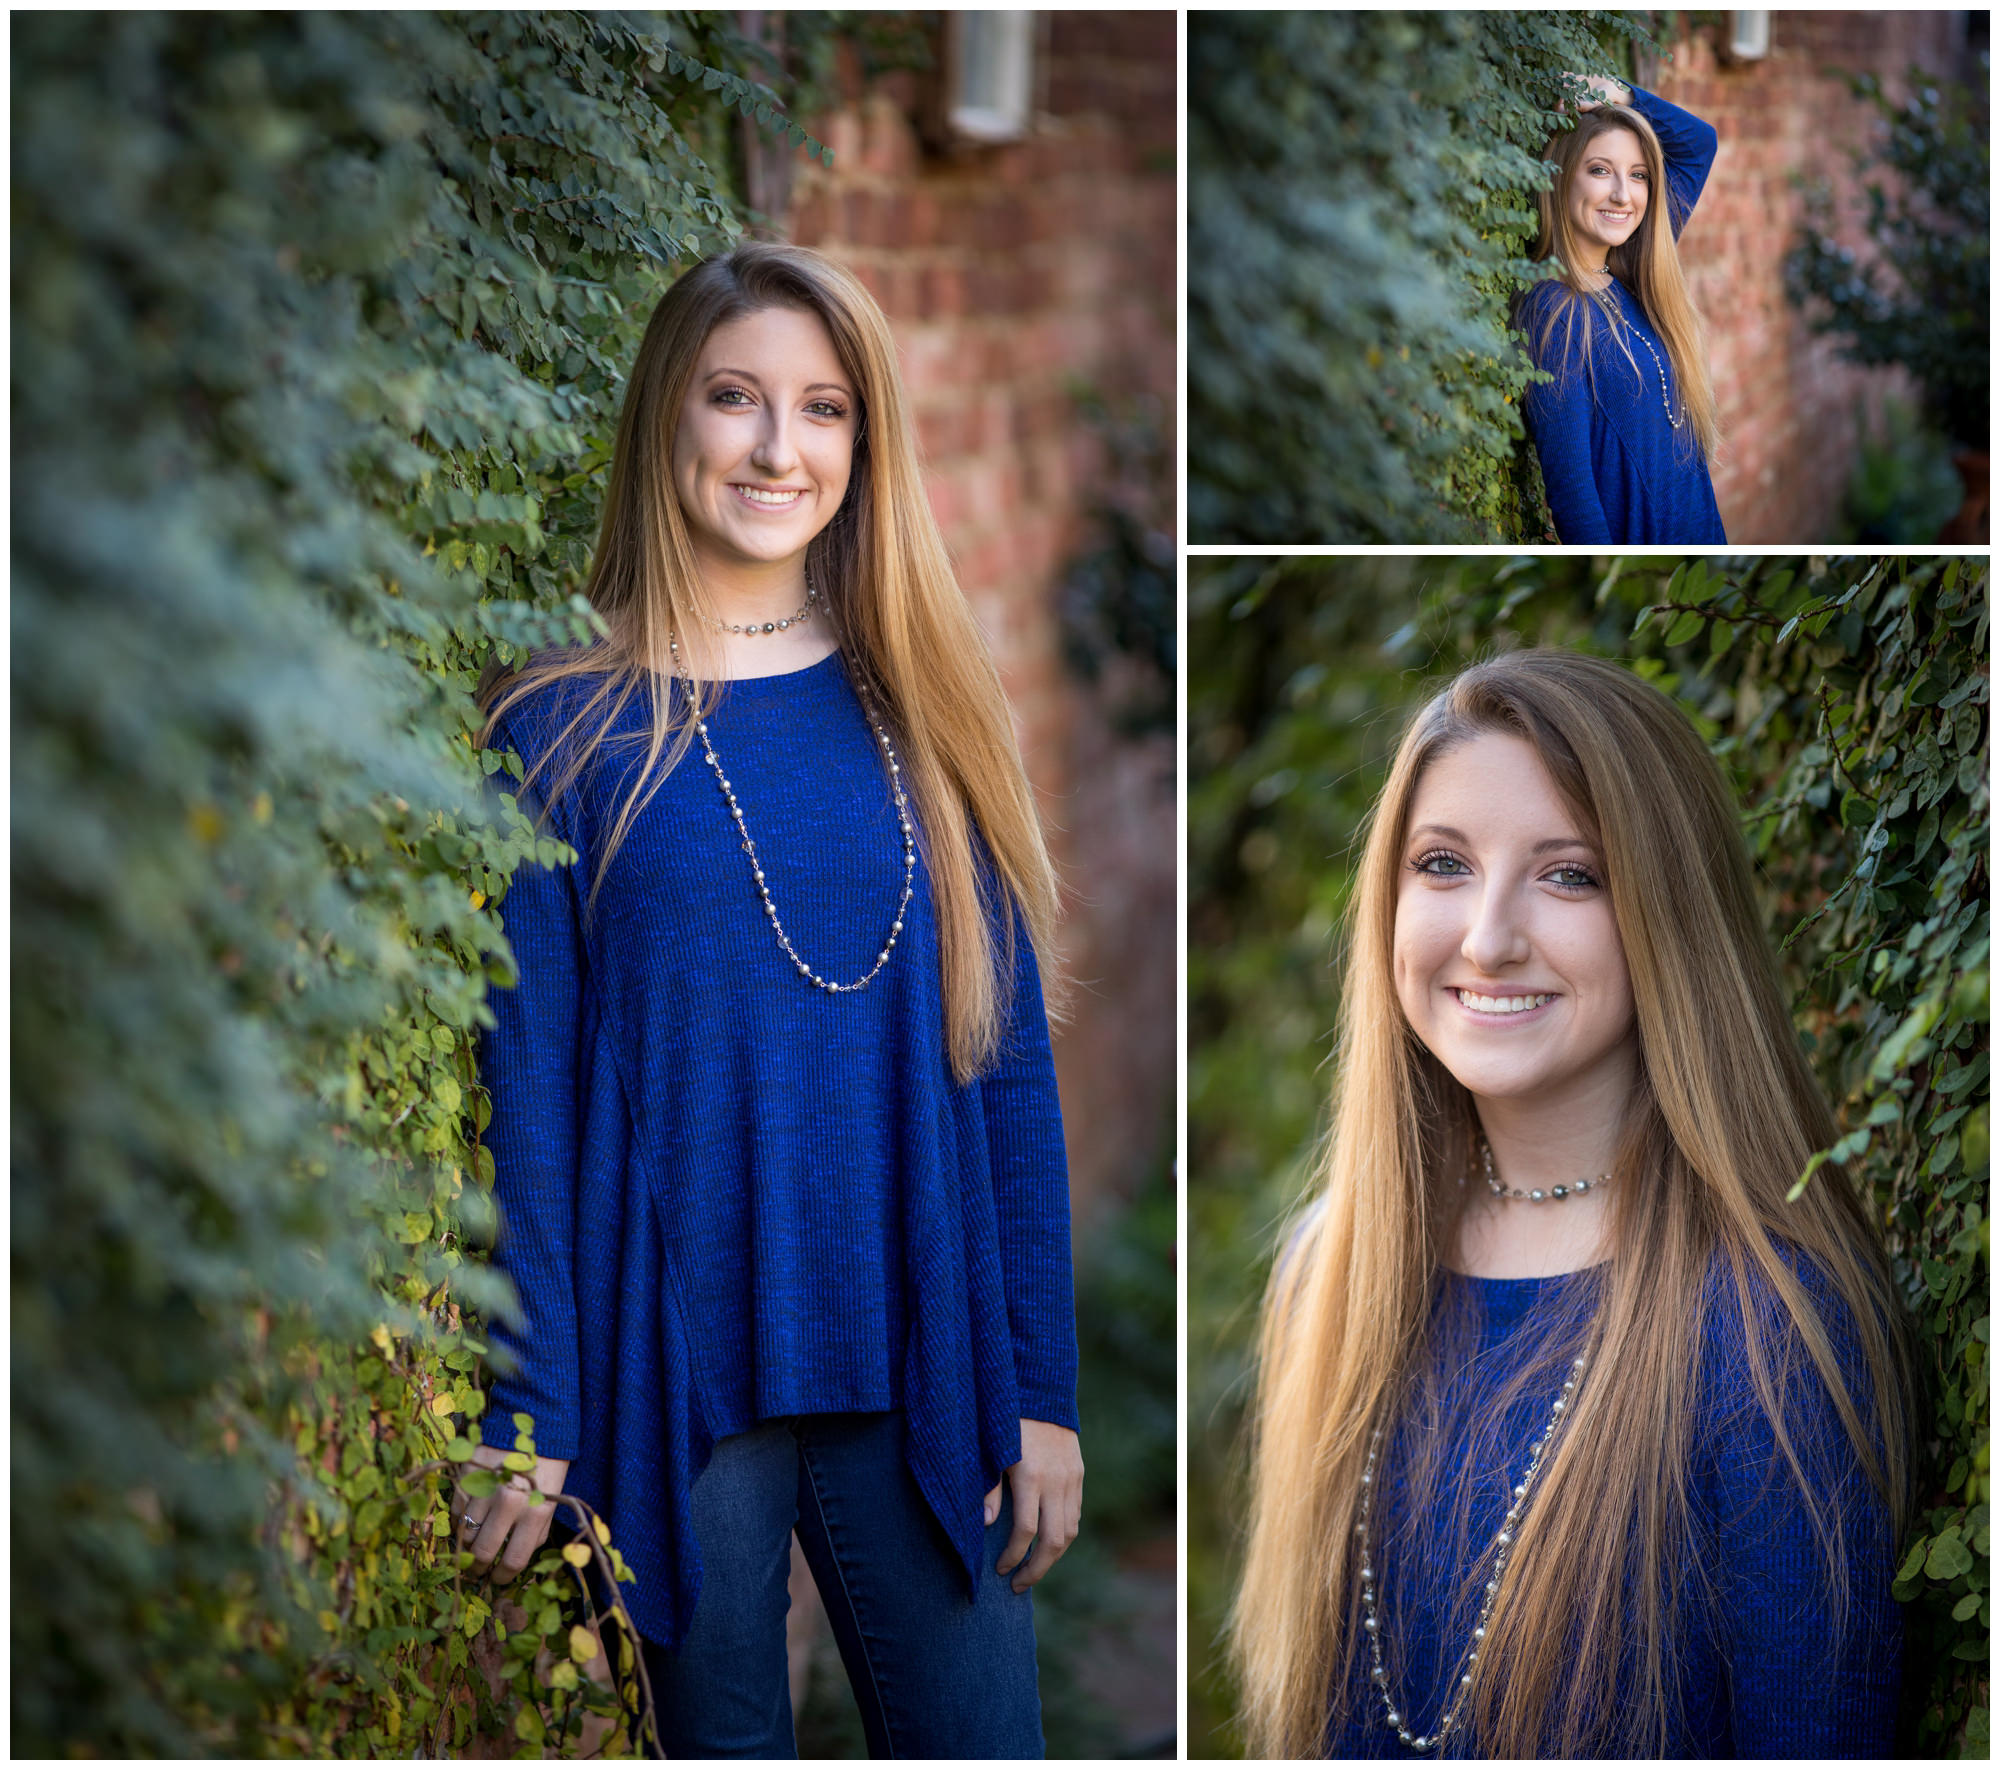 Graduate portraits on Foster street in downtown Dothan, AL. Nicole Everson Photography.